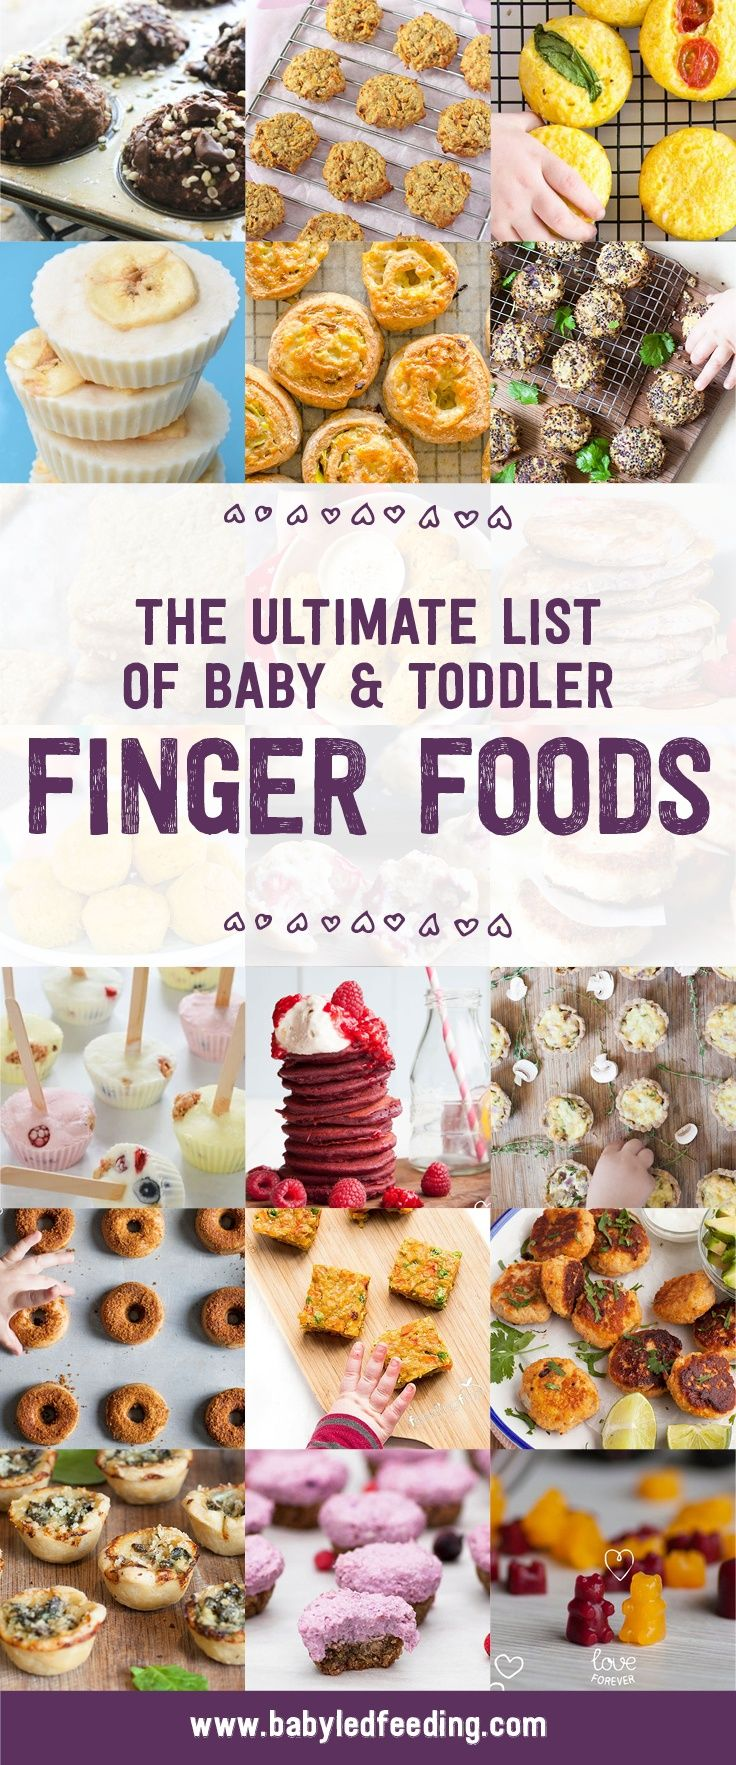 The ultimate list of baby toddler finger foods baby led feeding the ultimate list of baby and toddler finger foods homemade baby finger food recipes and forumfinder Choice Image